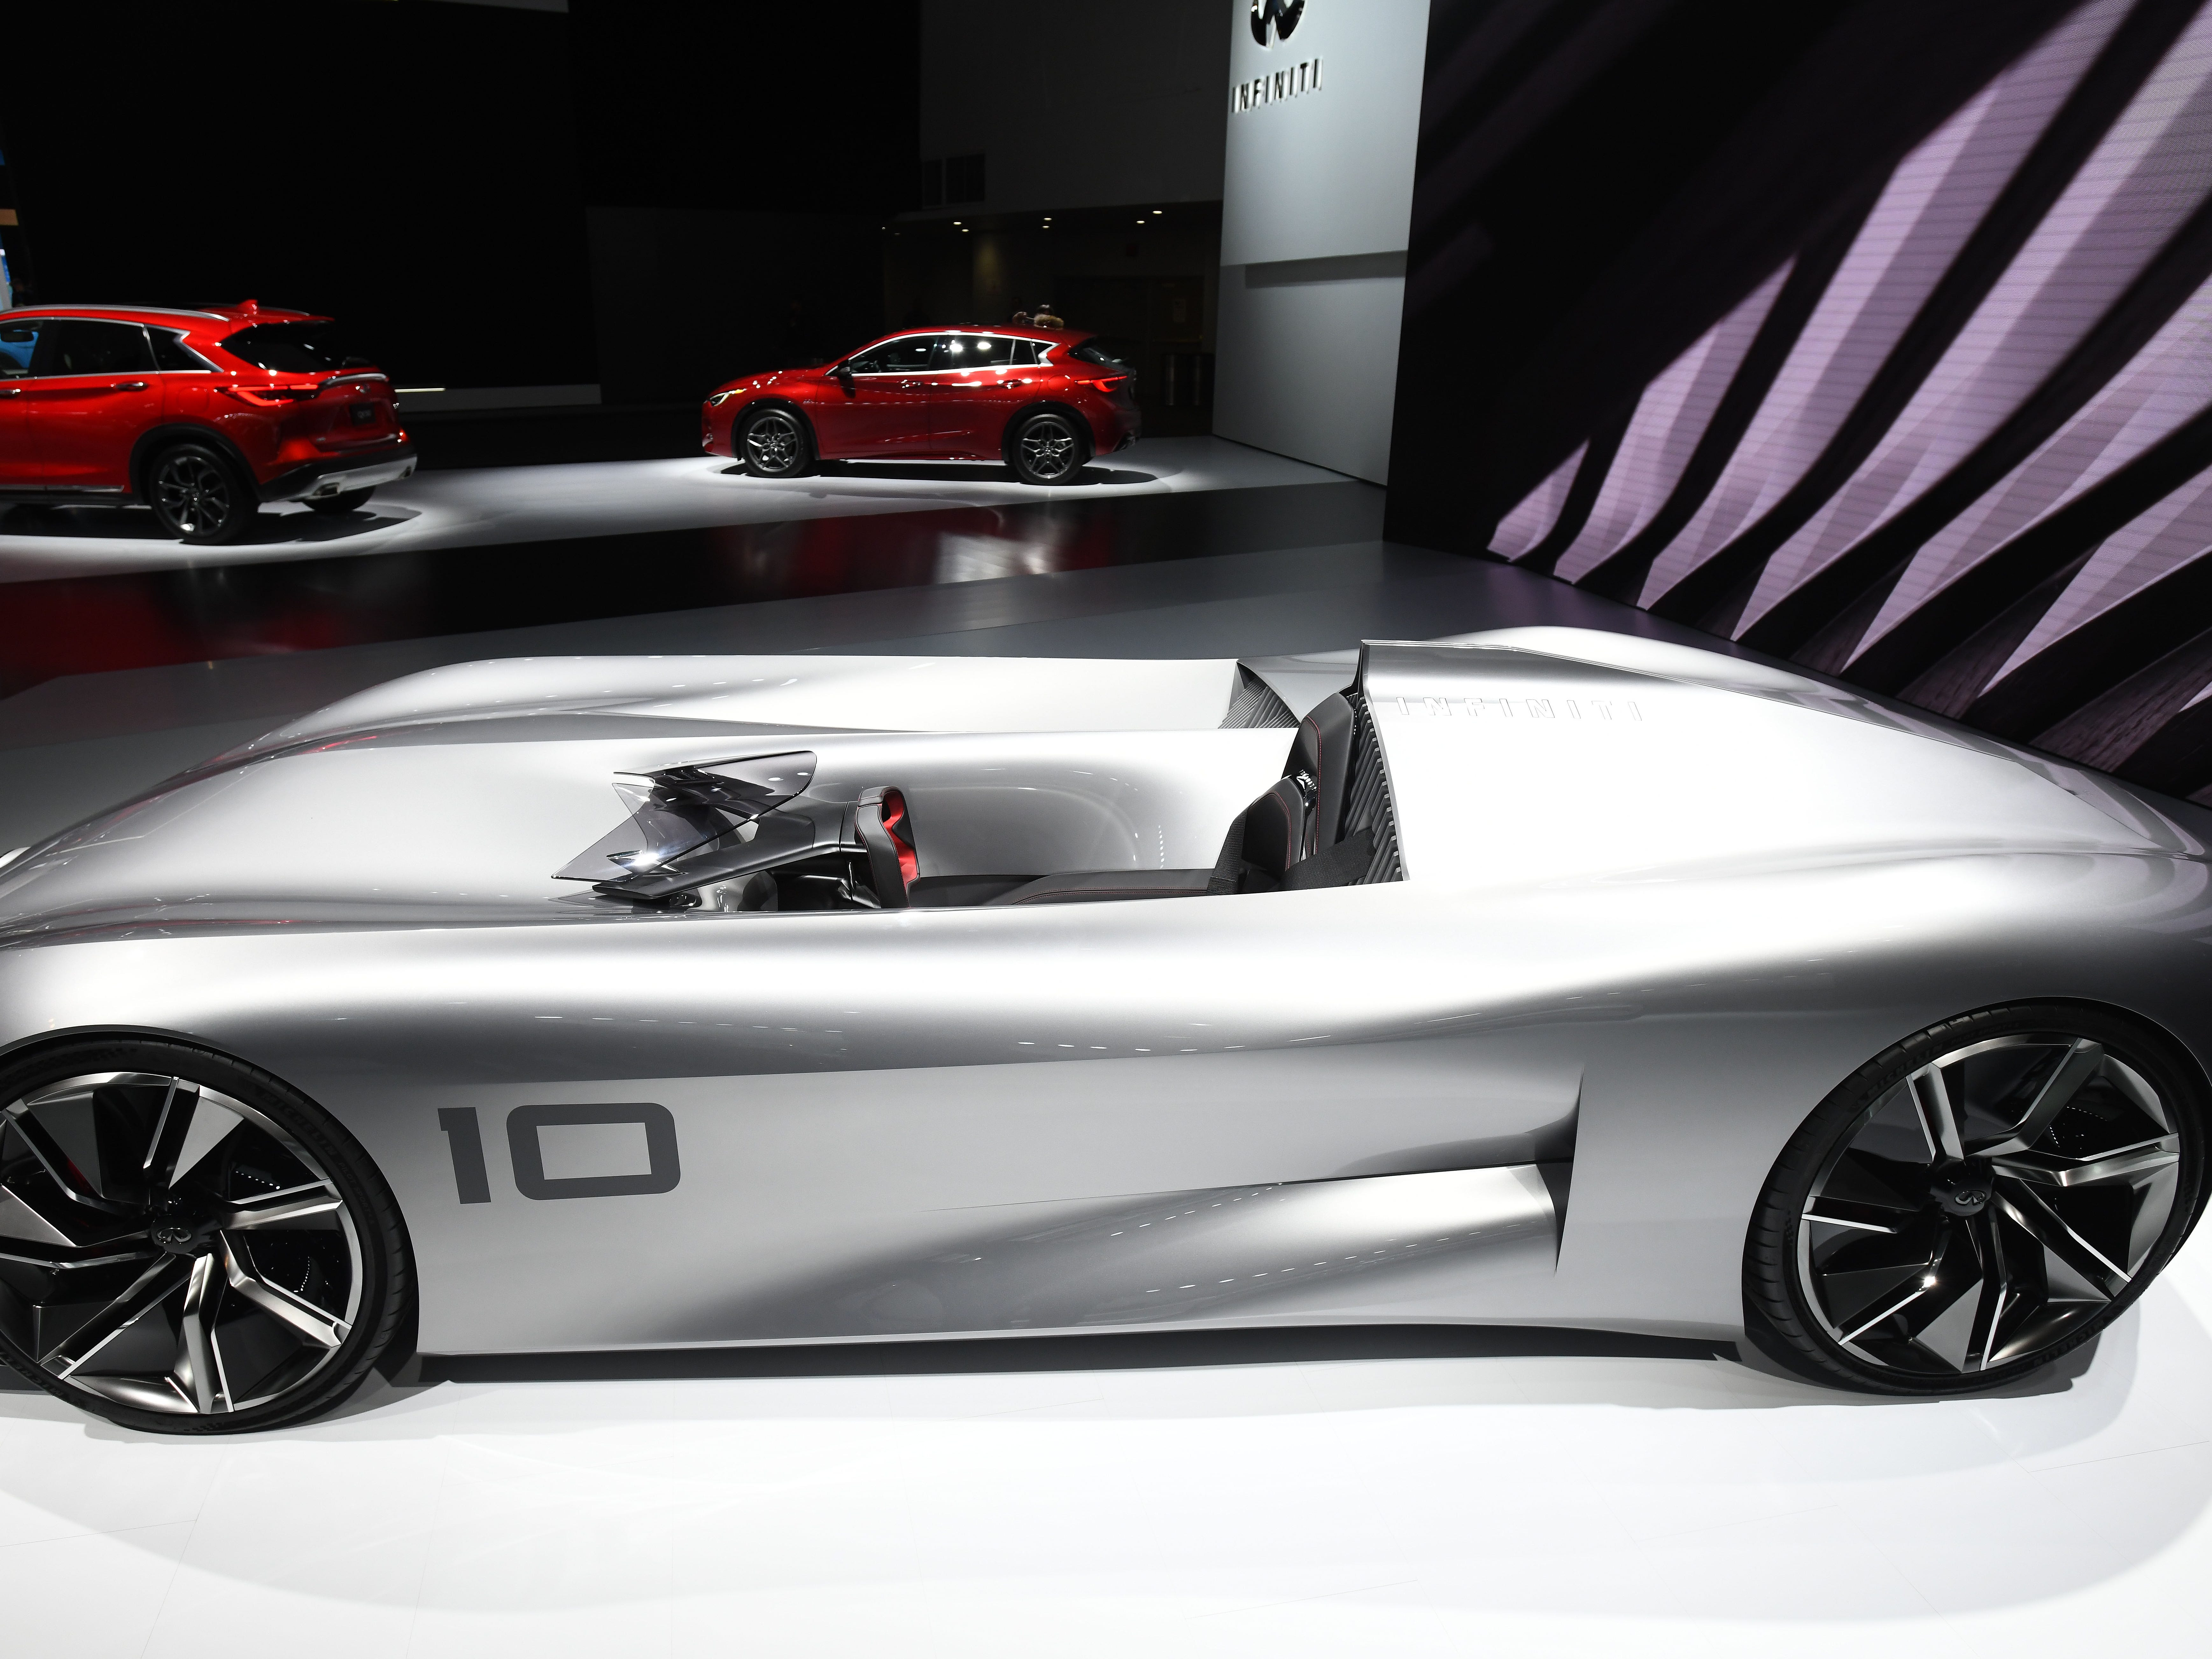 The Infiniti Prototype 10 Concept electric race car is displayed Tuesday, January 14, 2019 at  the North American International Auto Show during media preview days at Cobo Center.